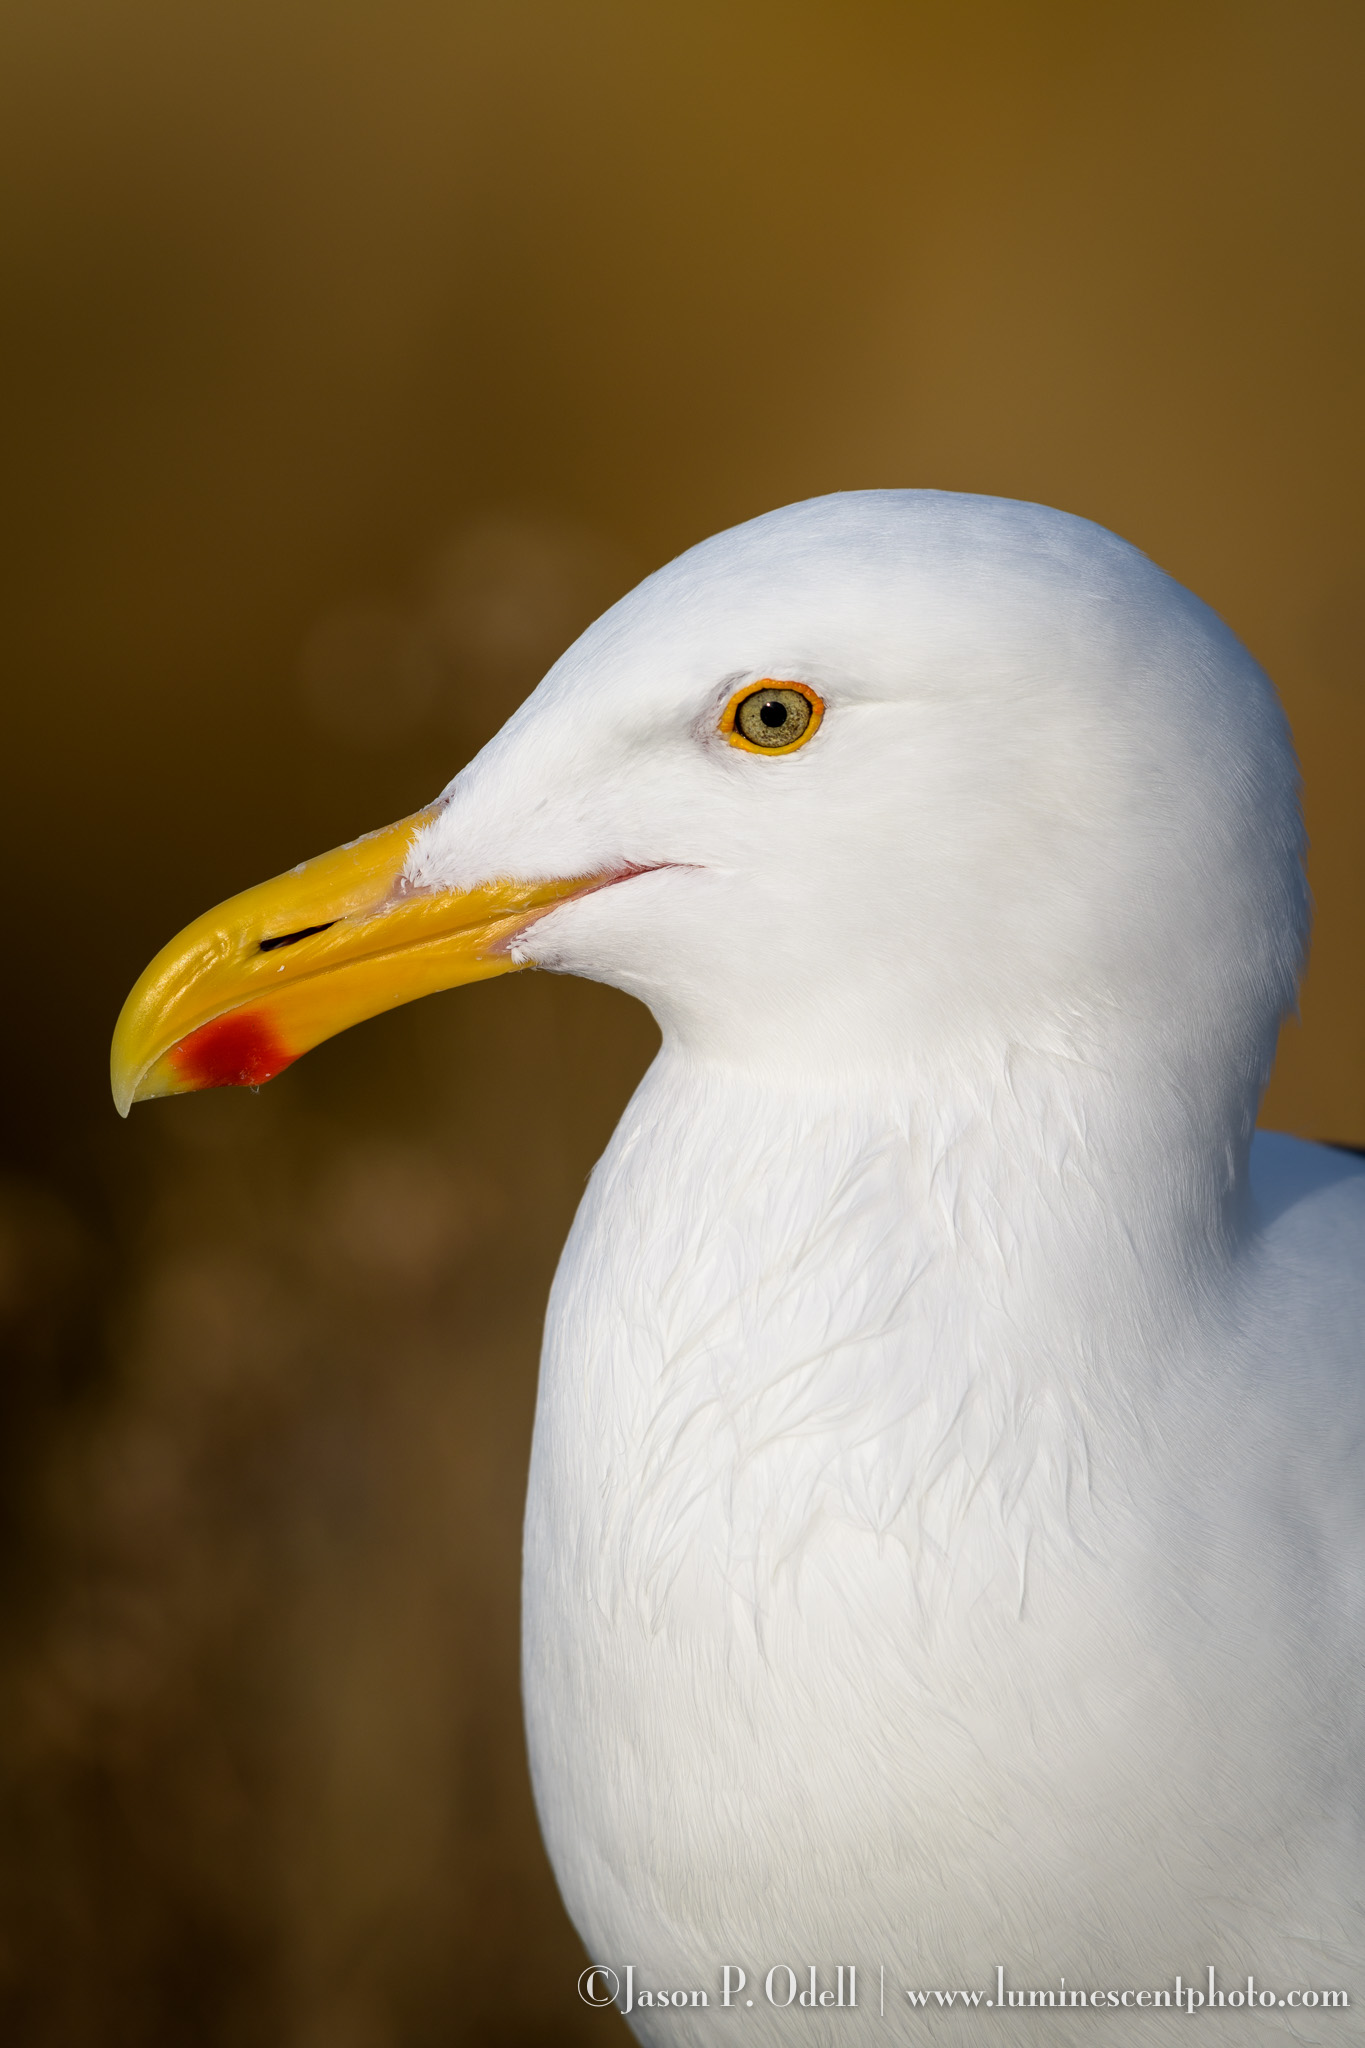 Western gull by Jason P. Odell